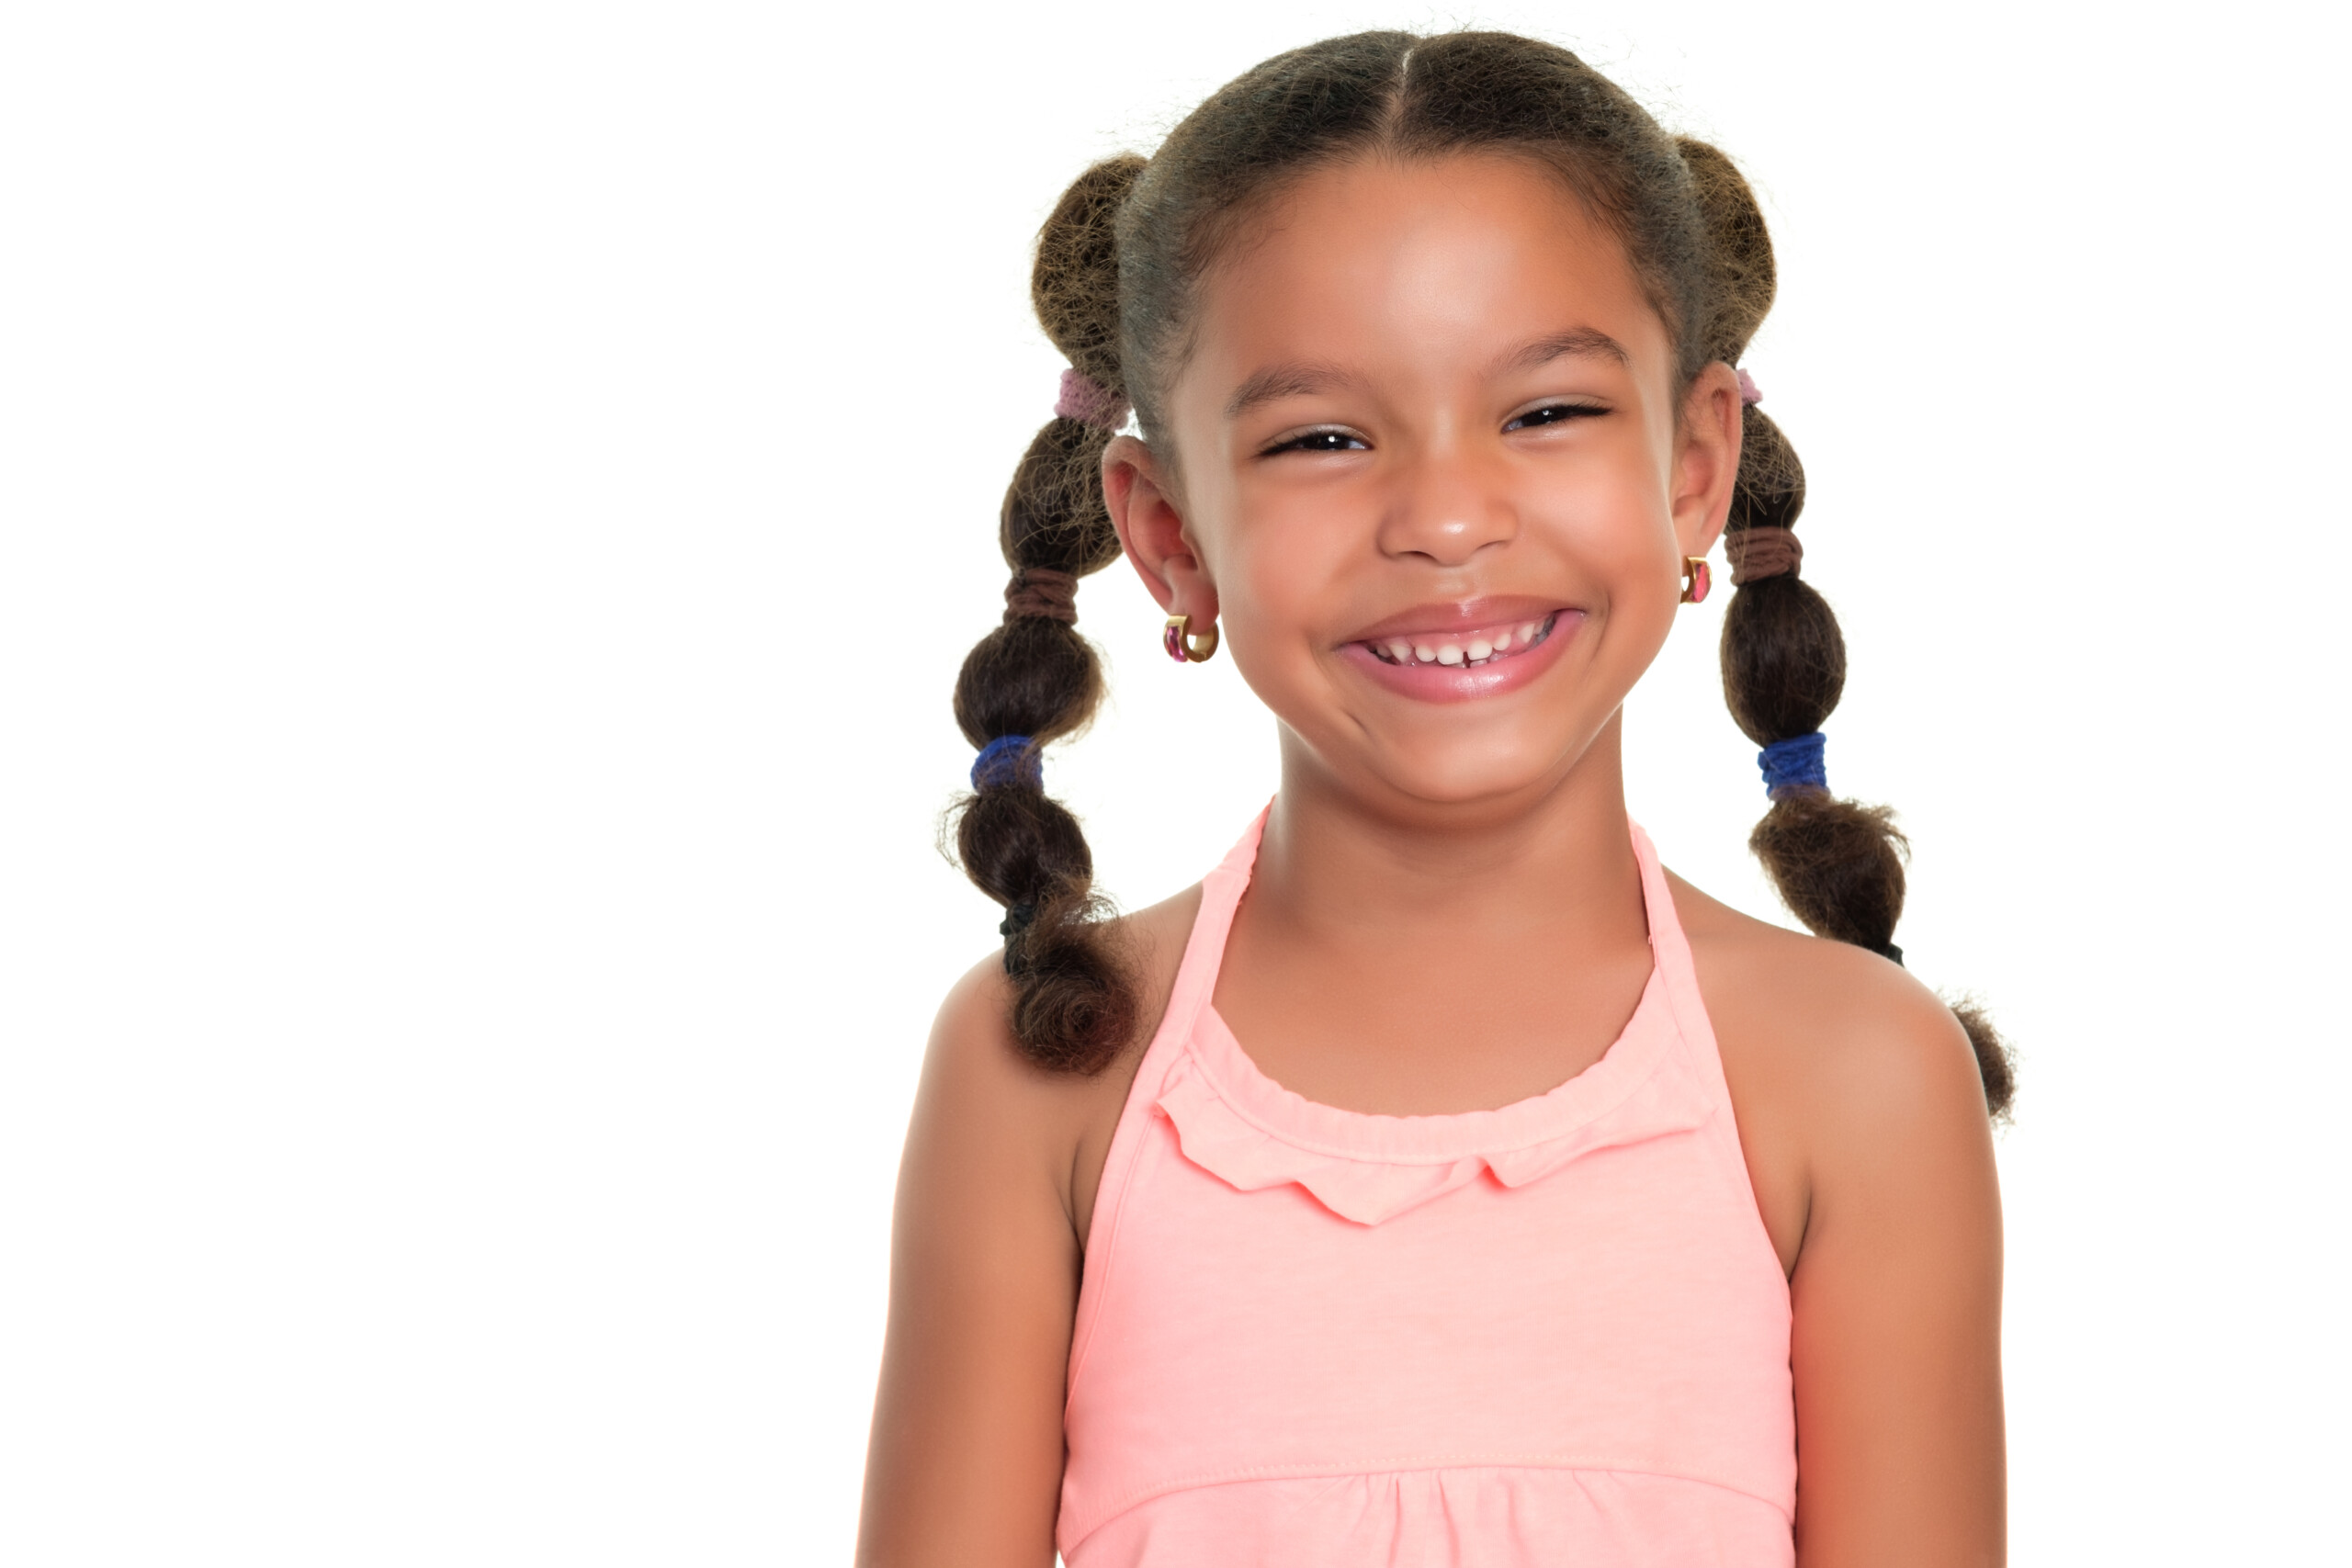 Could Dental Problems Be Causing Your Child's Bad Breath?